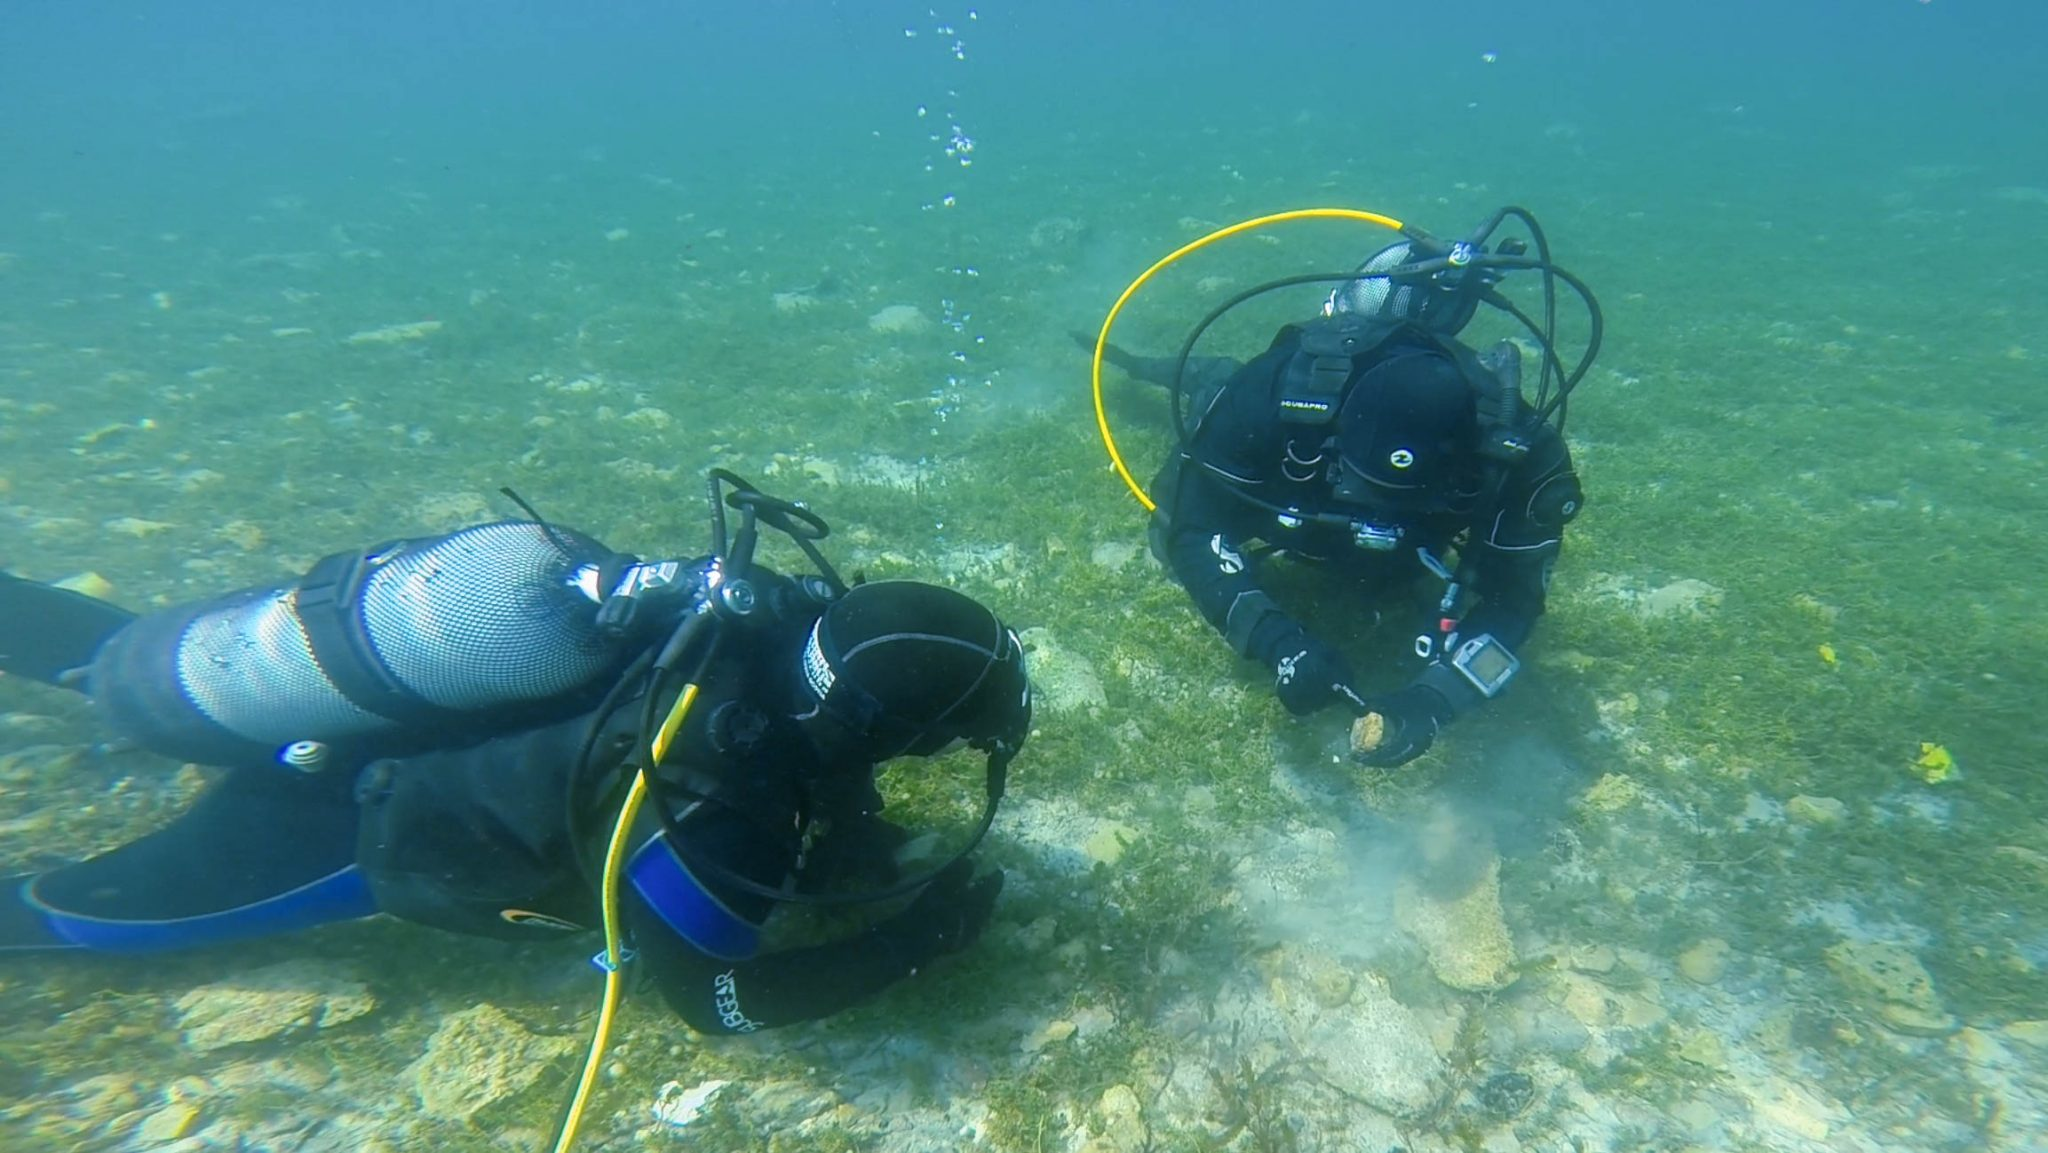 Joey Getting An Archeology Lesson From Our Divemaster  while scuba diving in Macedonia